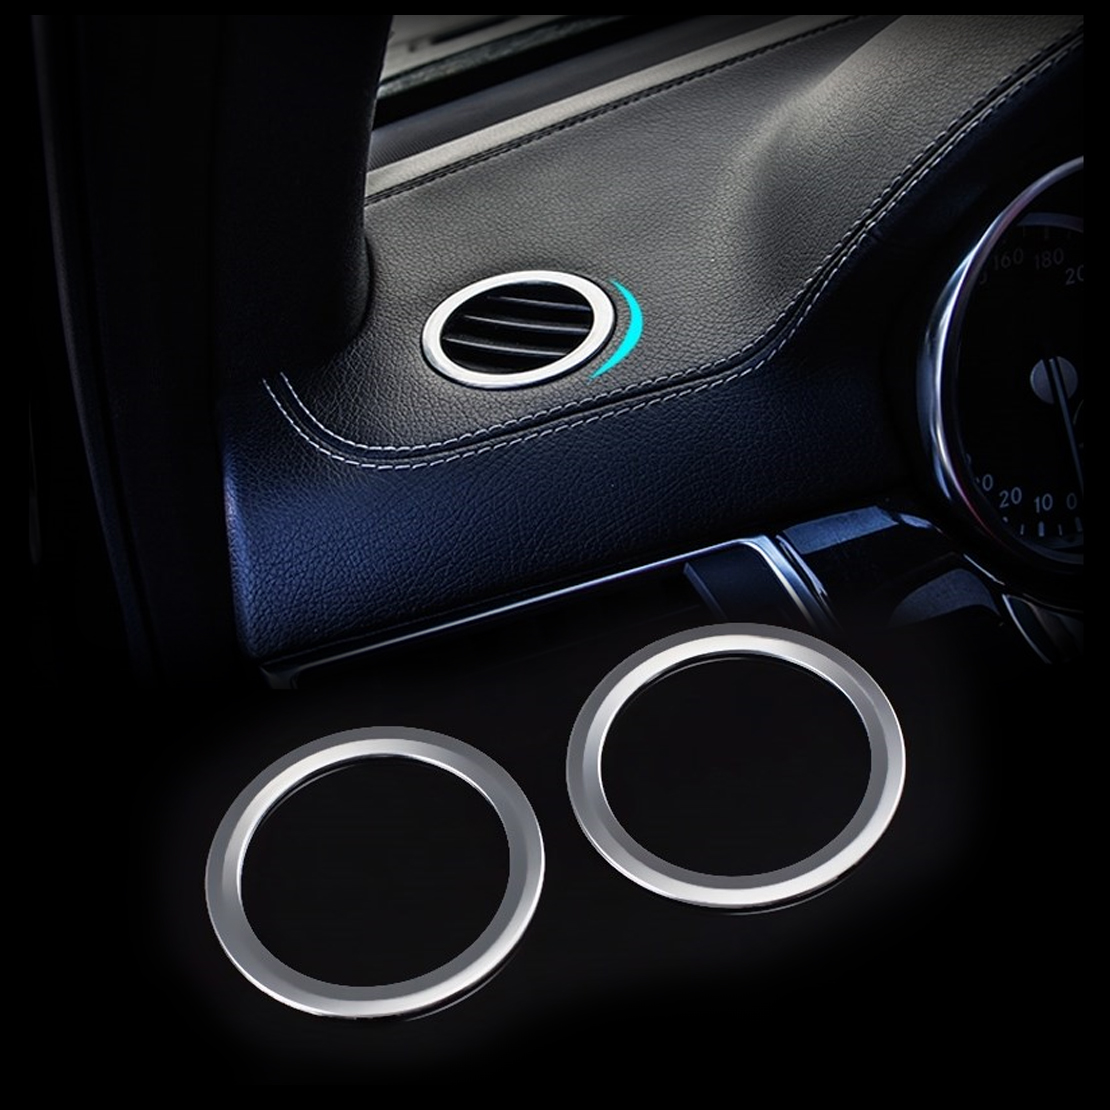 2X Car Dashboard Air Vent Outlet Cover Trim Fit for Benz GLK X204 ML GL B Class